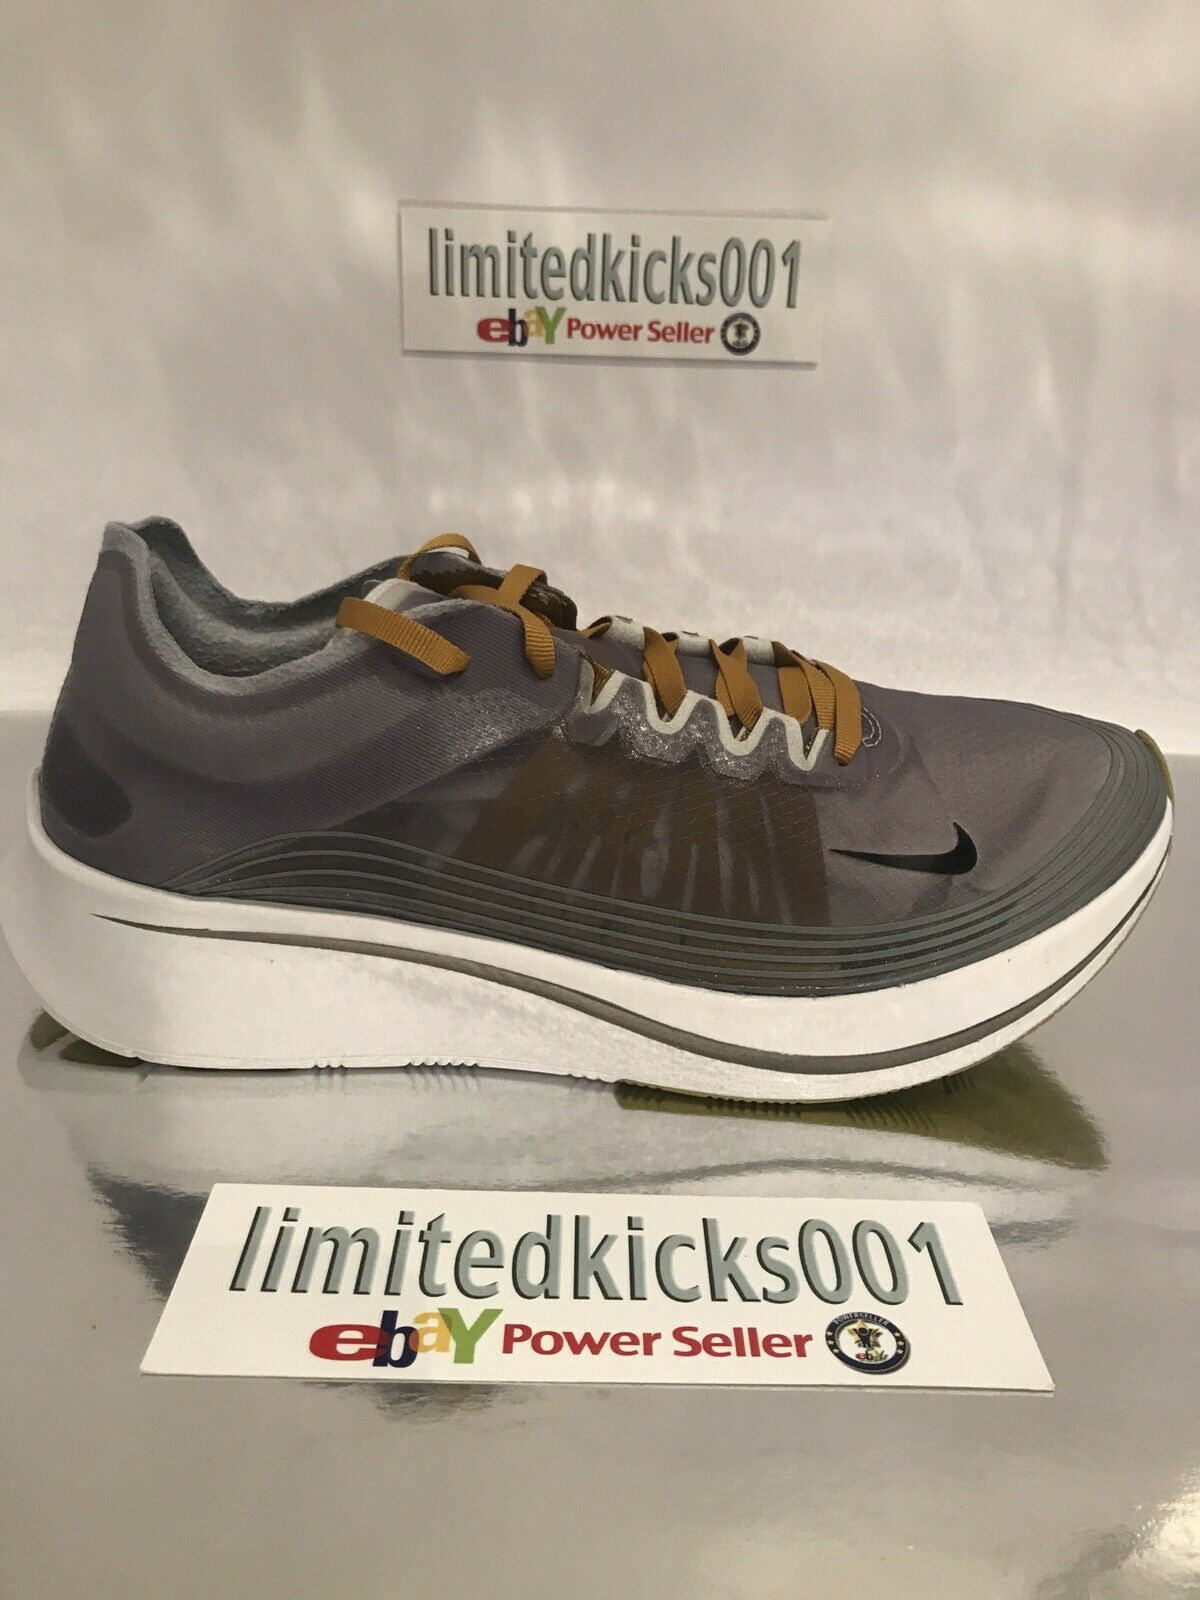 BNIB NIKE ZOOM FLY SP GREY WHITE GYM WOMENS RUNNING TRAINERS SHOES SZ 7.5